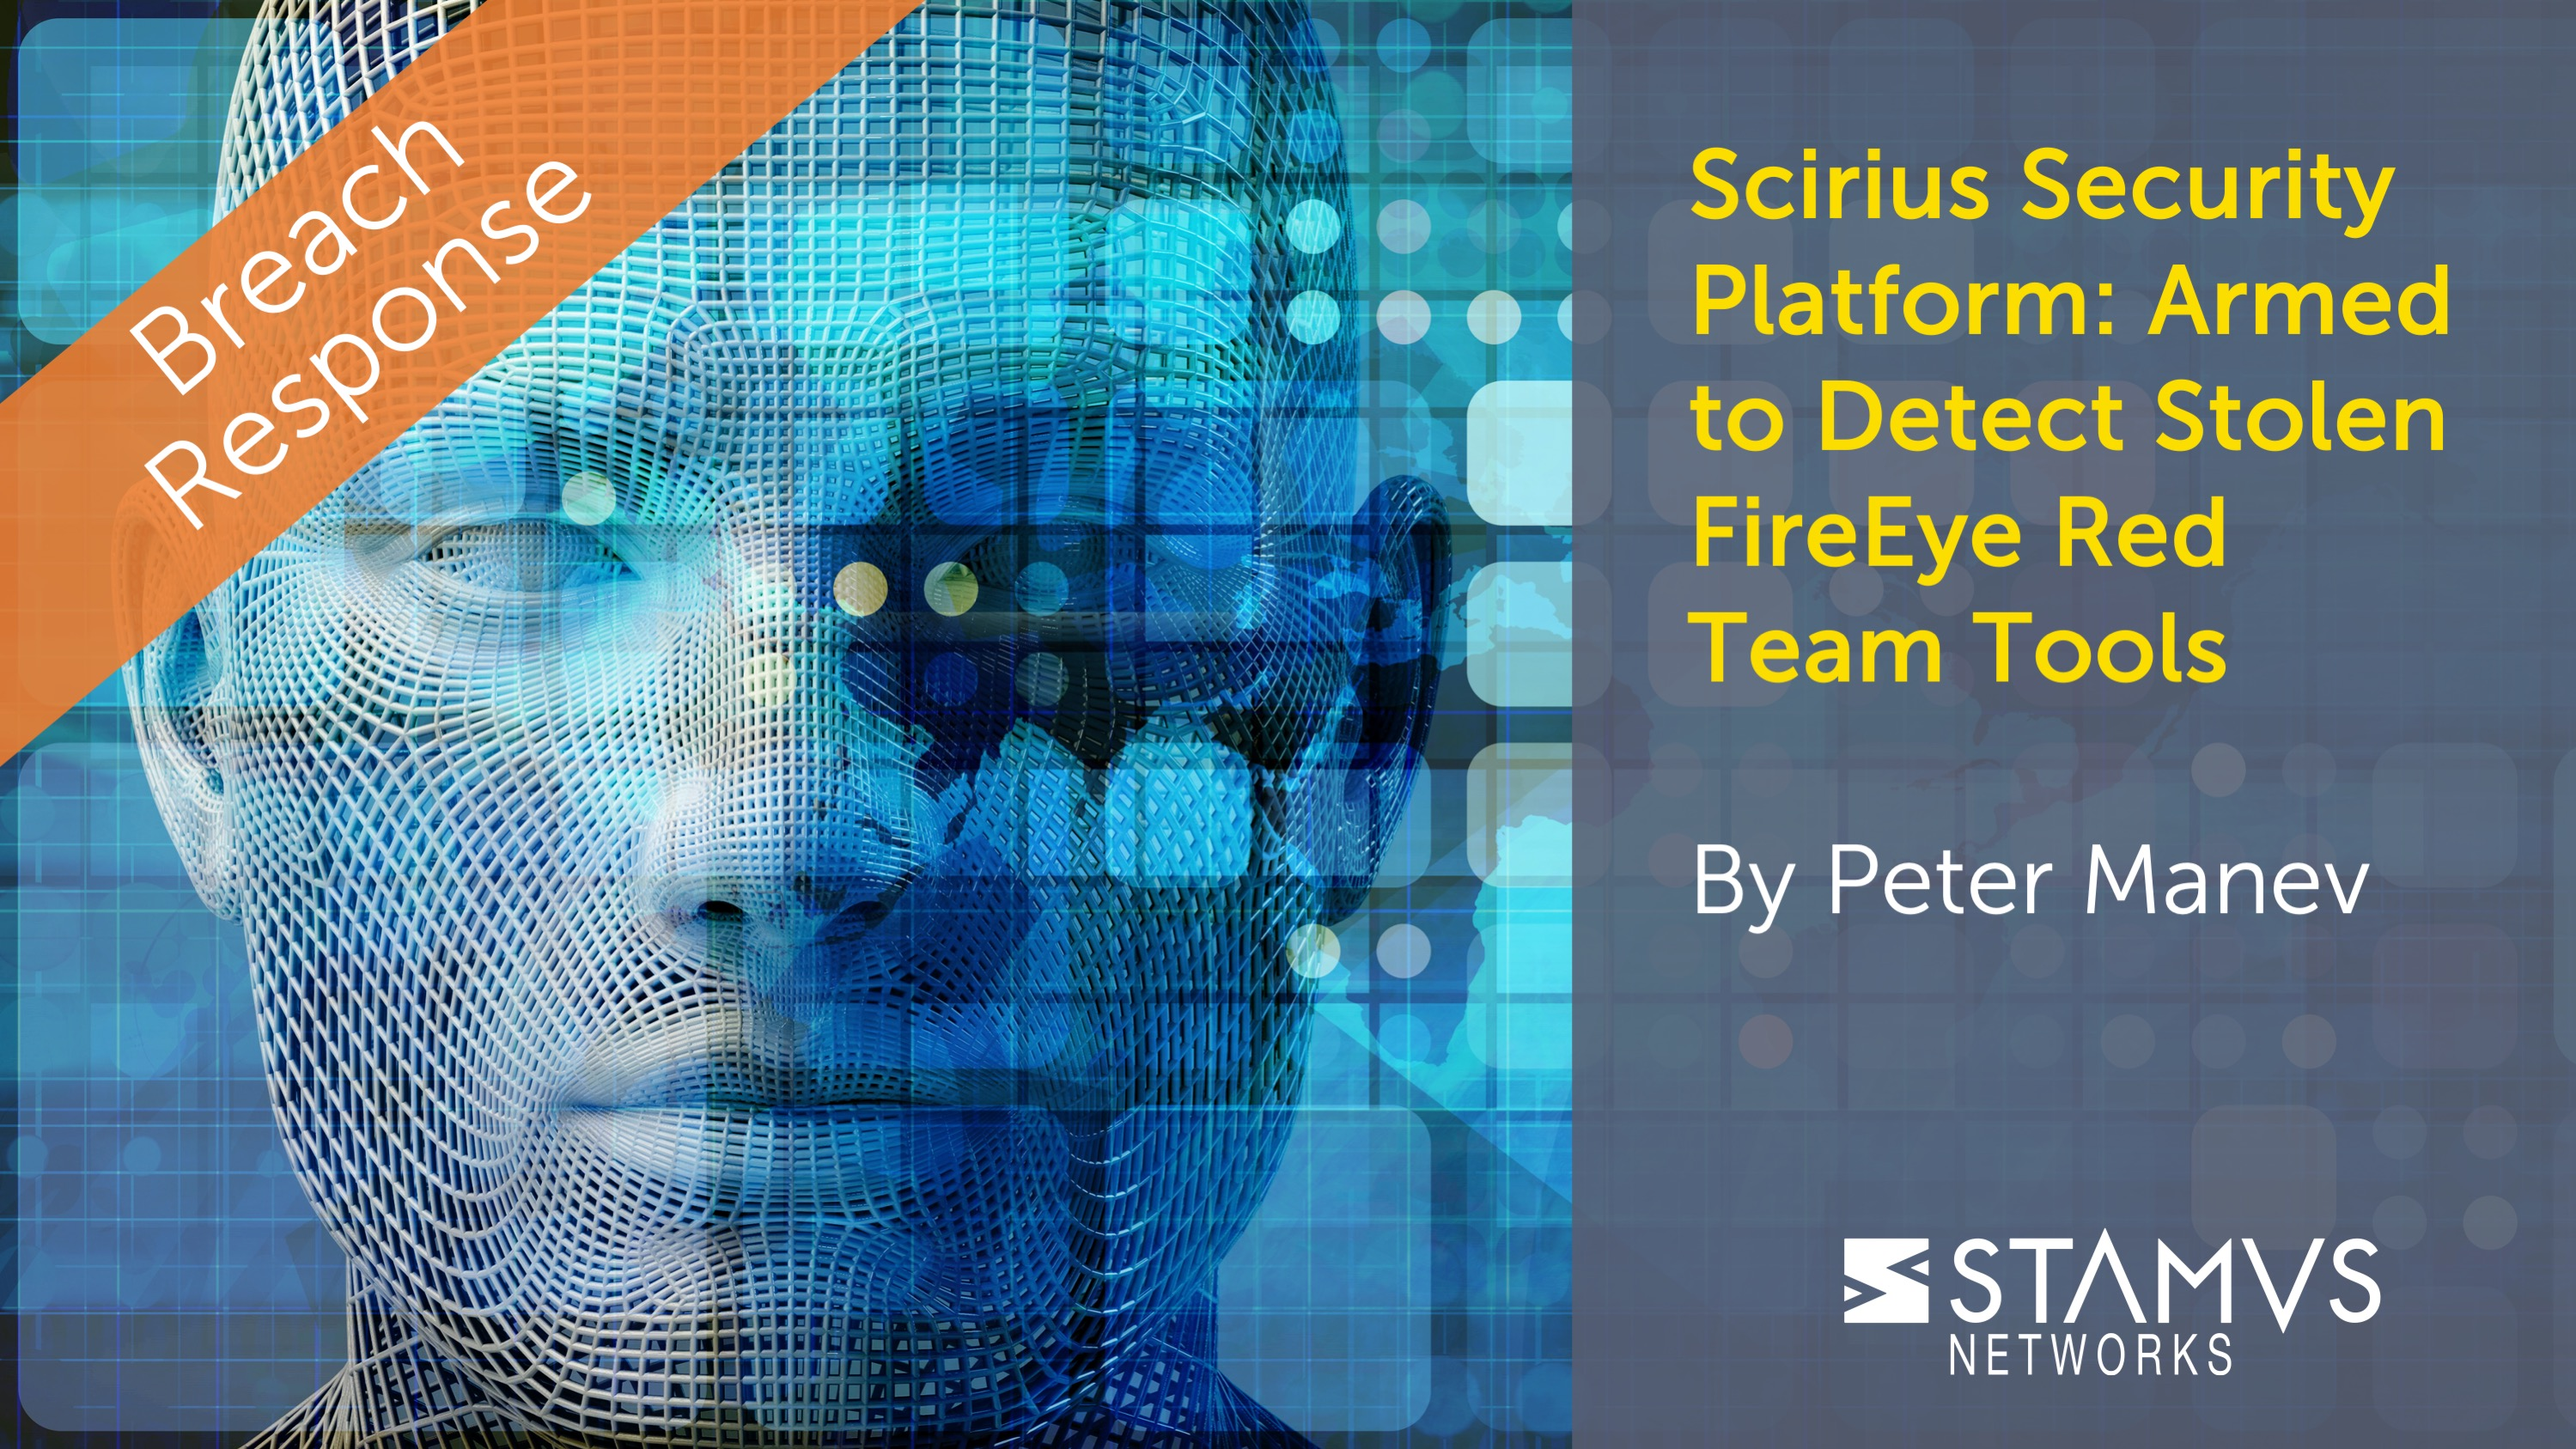 Breach Response - Scirius Security Platform users are Armed to Detect Stolen FireEye Red Team Tools